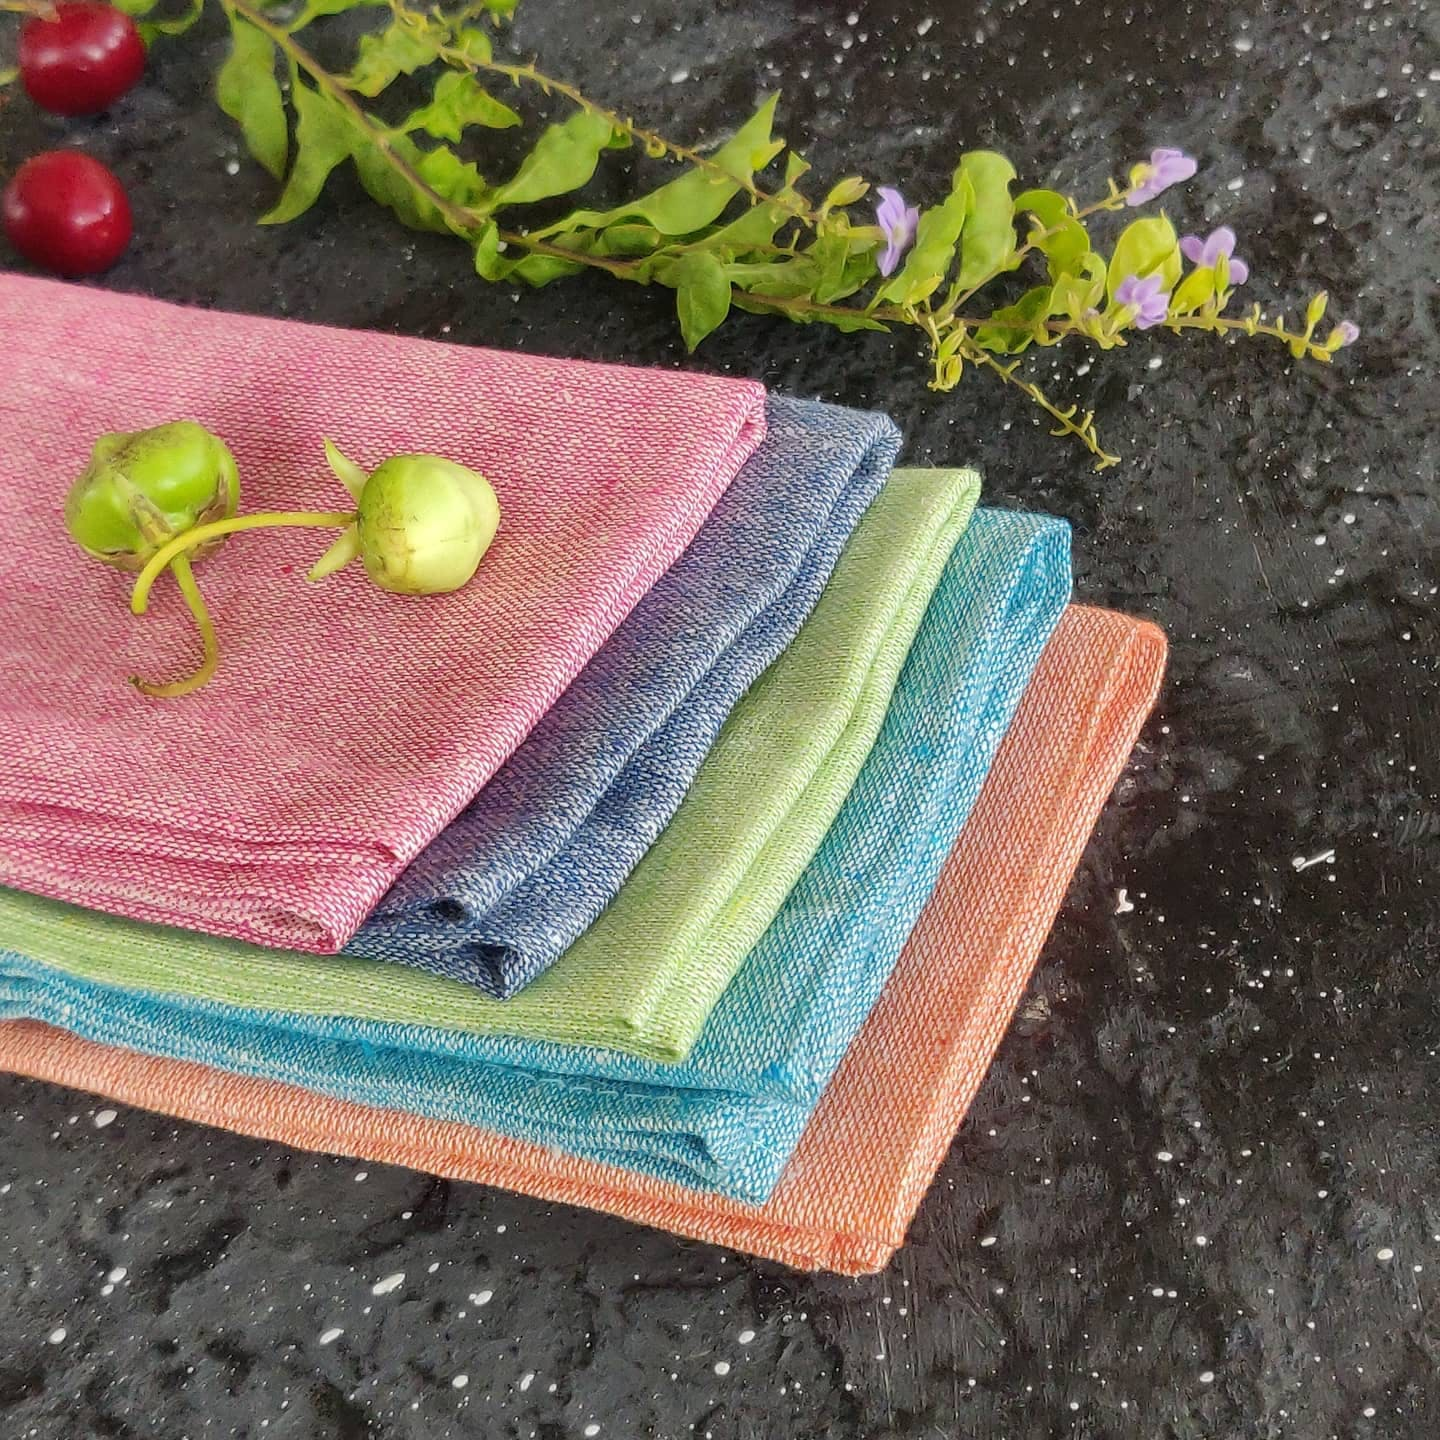 Pink,Textile,Wood,Cutting board,Rectangle,Table,Plant,Linens,Linen,Placemat